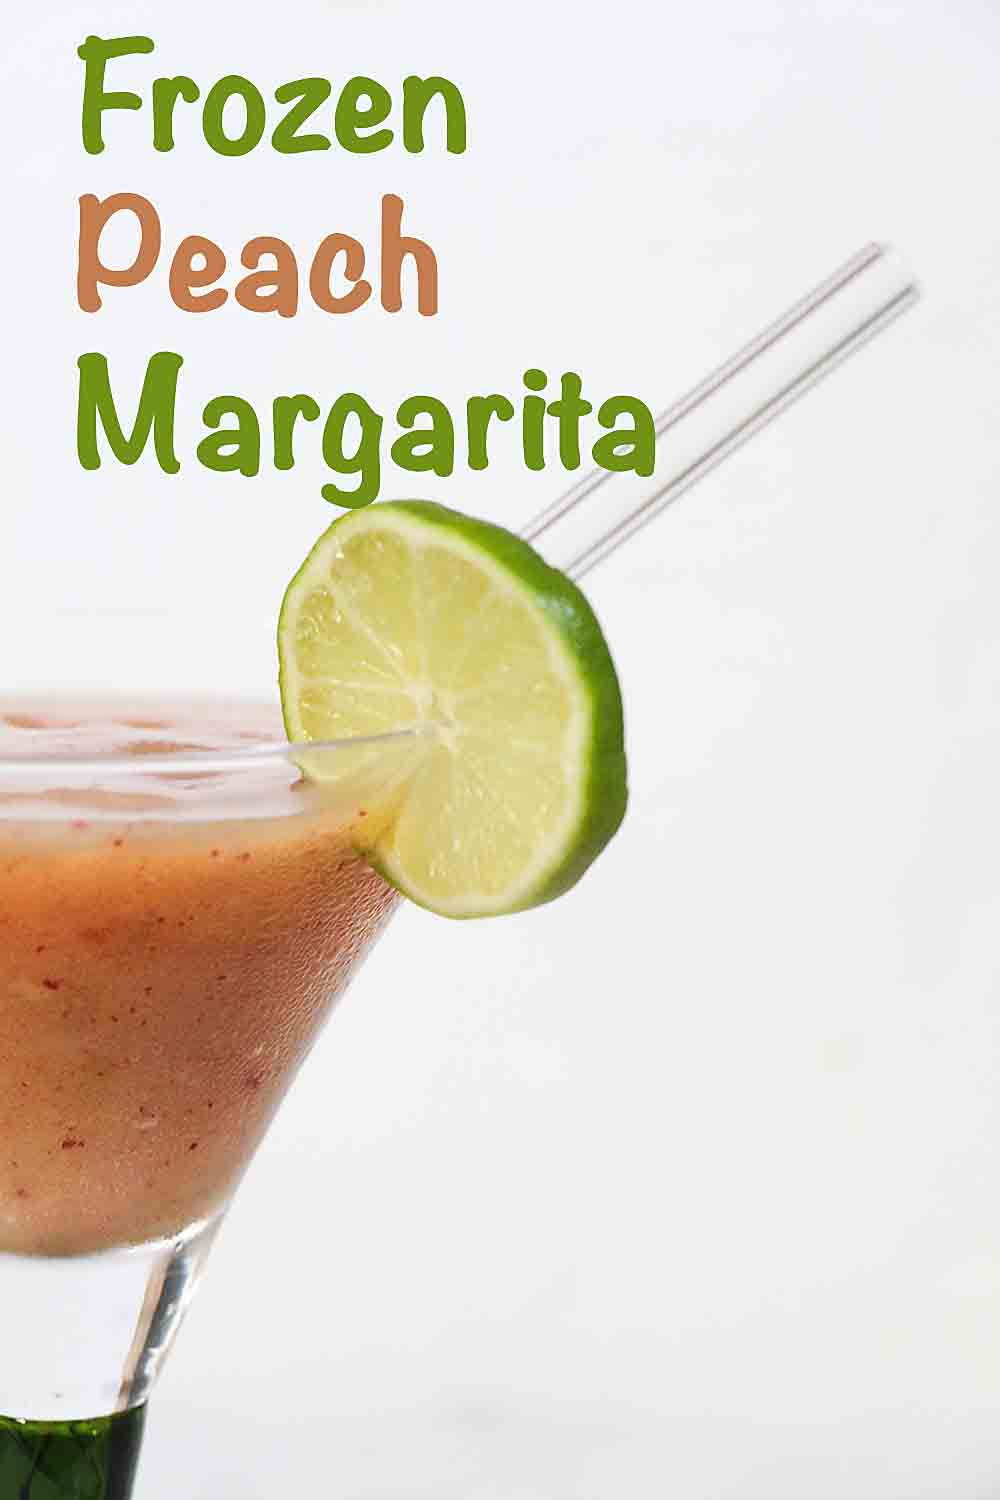 Frozen Peach Margaritas are a great twist on the classic cocktail. The sweet taste of peaches is perfect any season. Alcohol free option too.